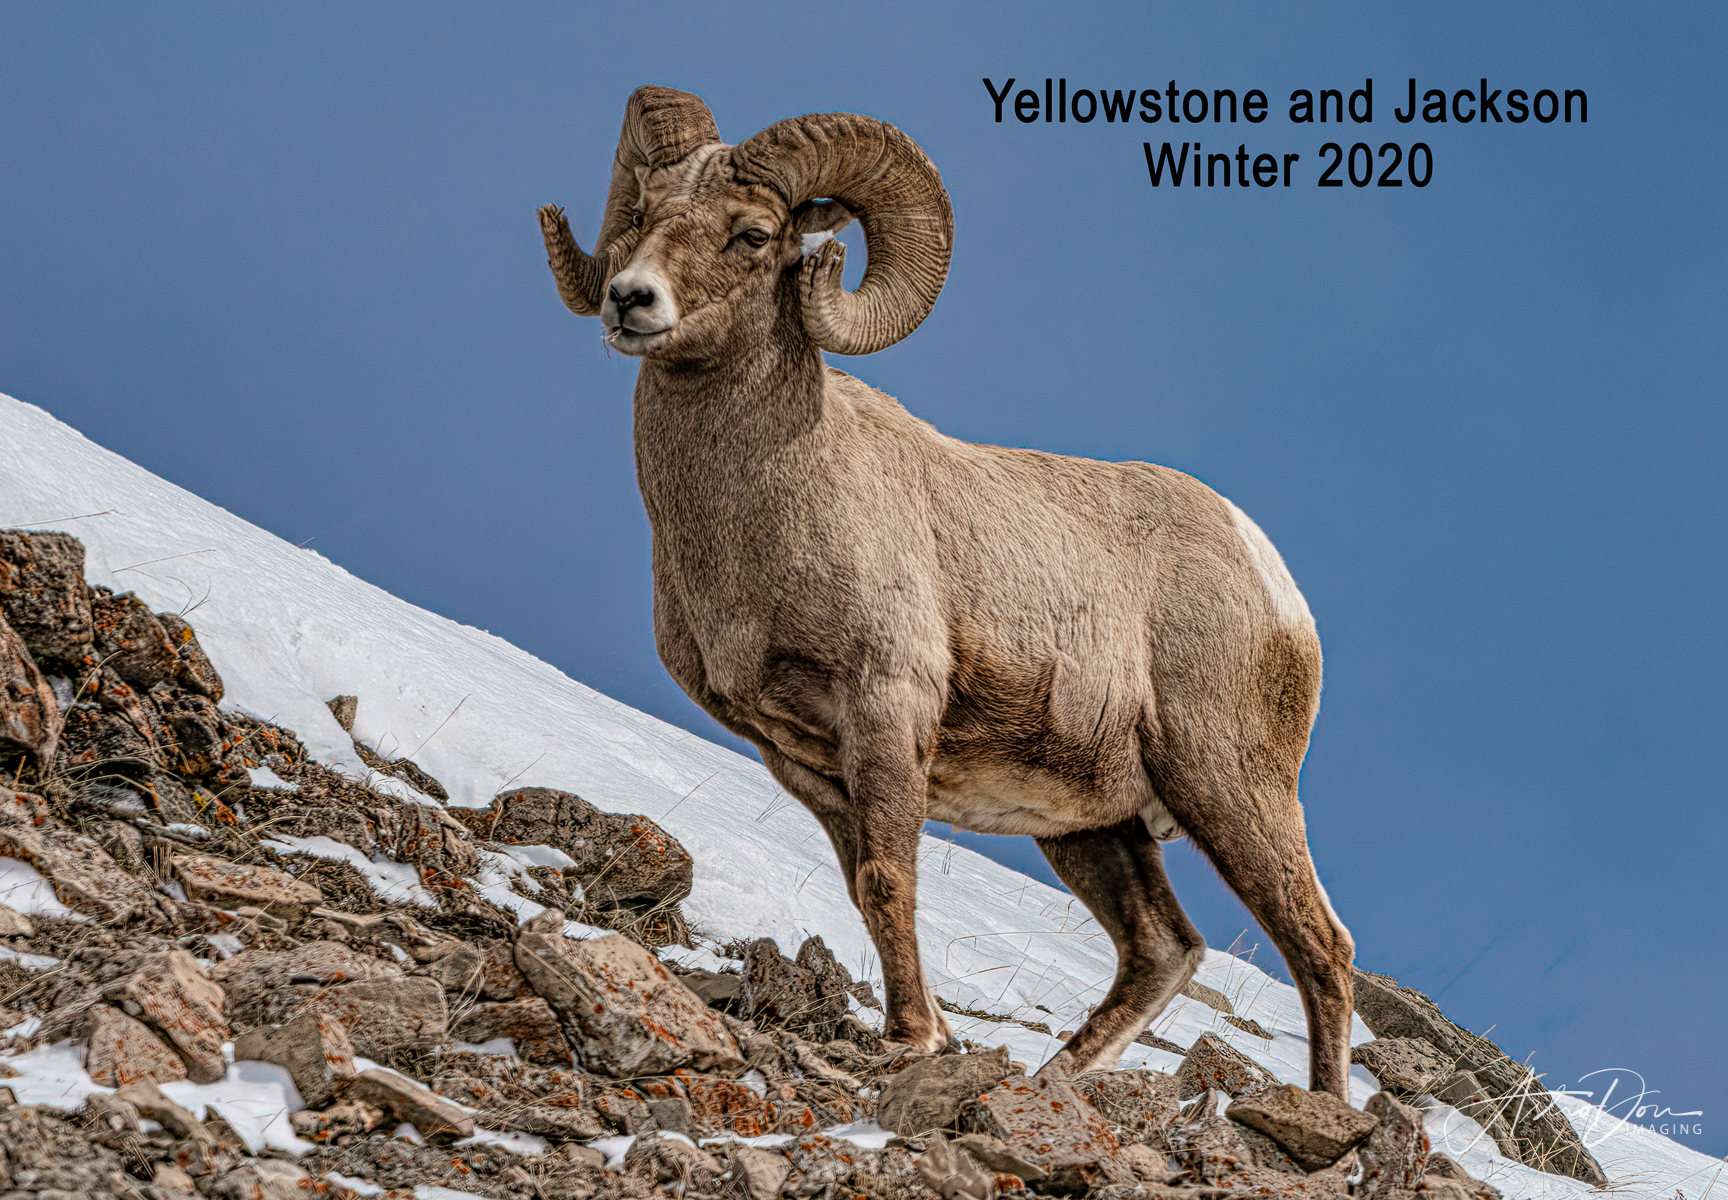 Yellowstone and Jackson Winter 2020